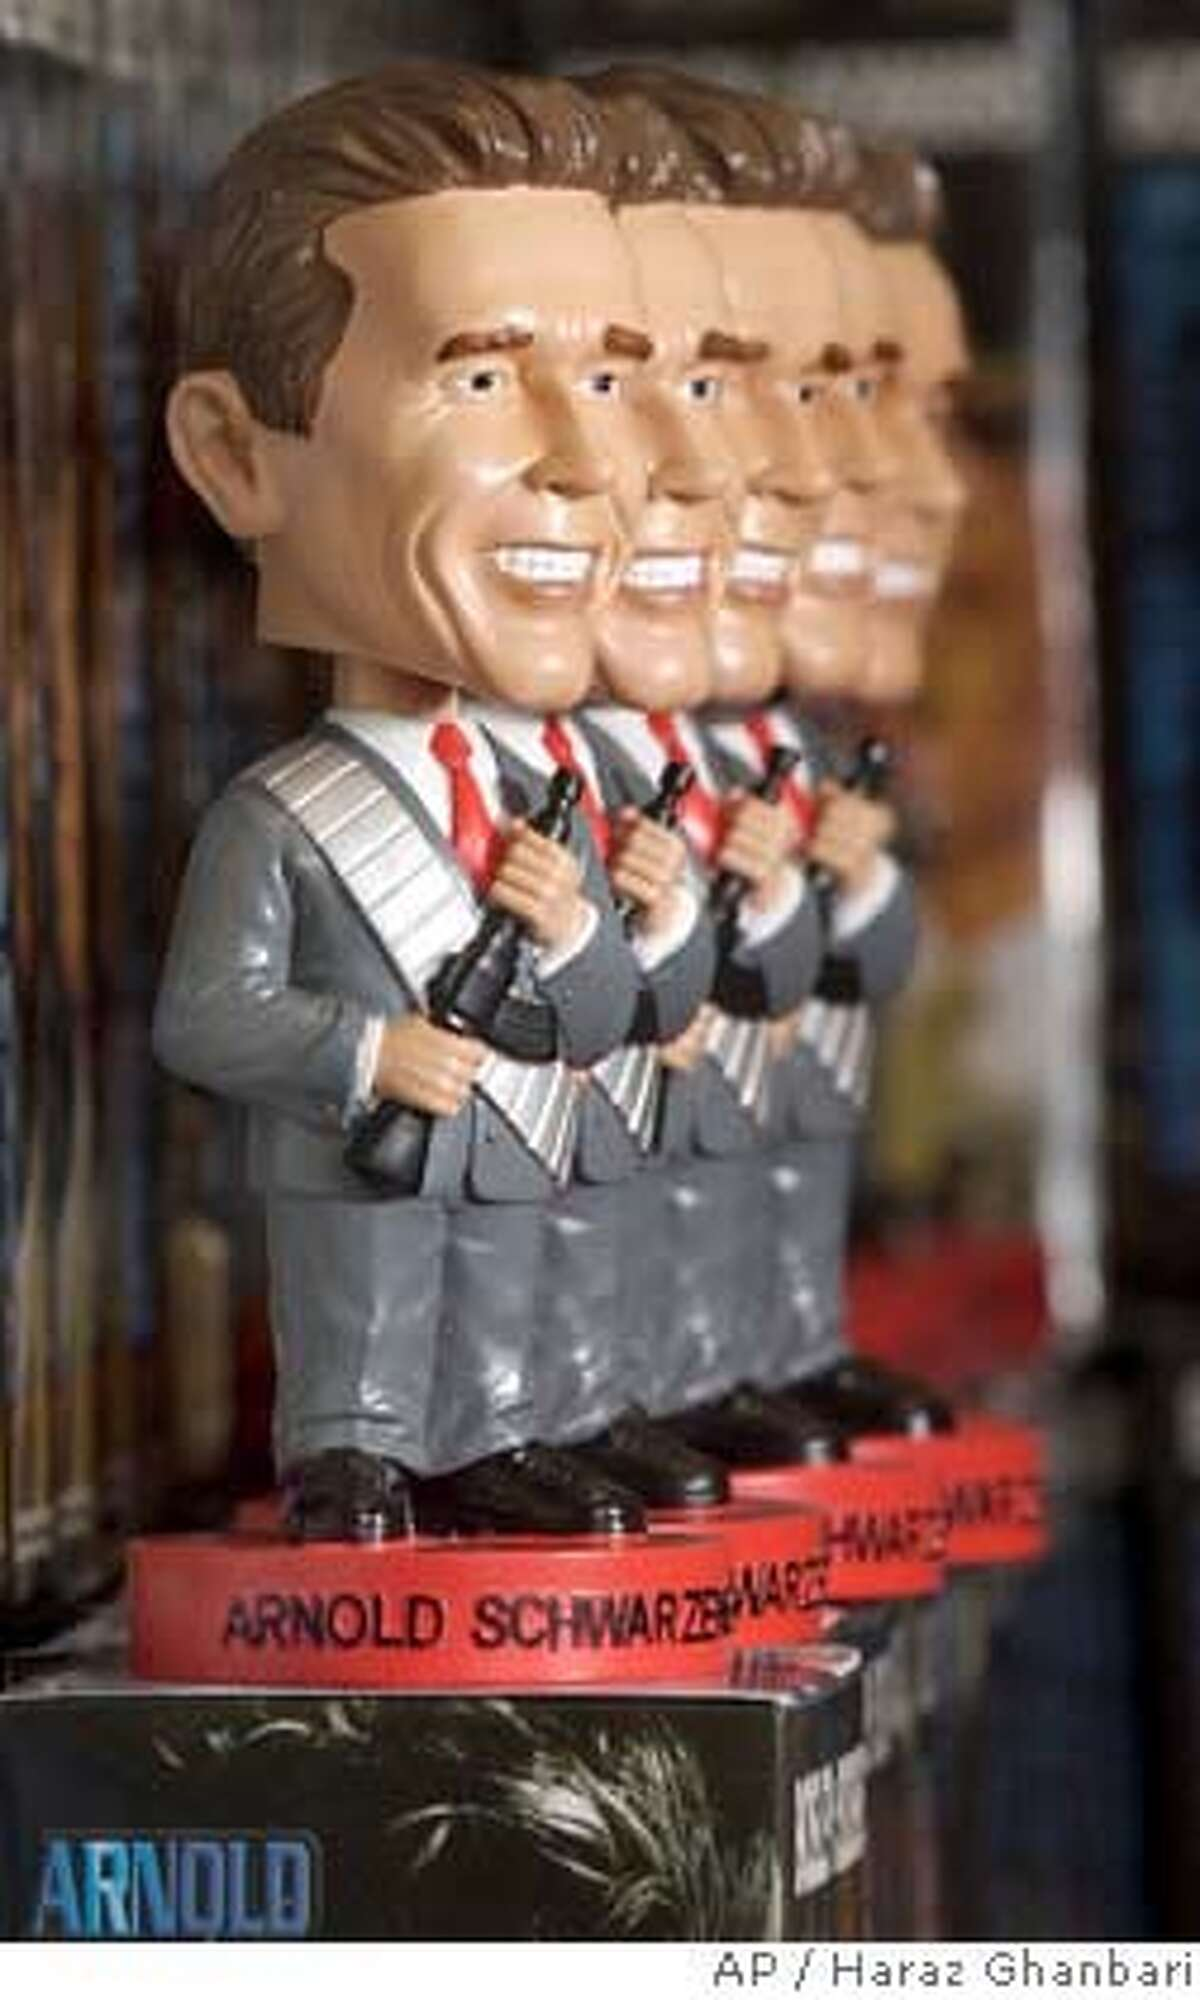 ** FILE ** A row of bobblehead dolls featuring the name and likeness of Calif. Gov. Arnold Schwarzenegger wearing a business suit and holding a gun are pictured in an office at Ohio Discount Merchandise in this April 30, 2004, file photo in Canton, Ohio. Schwarzenegger announced Monday, Aug. 2, 2004, that he had settled a suit with Ohio Discount Merchandise Inc. allowing them to produce the doll without the gun, and Ohio Discount also agreed to donate a portion of its sales to Schwarzenegger's nonprofit organization, Arnold All-Stars afterschool program. (AP Photo/ Haraz Ghanbari) APRIL 20 2004 FILE PHOTO